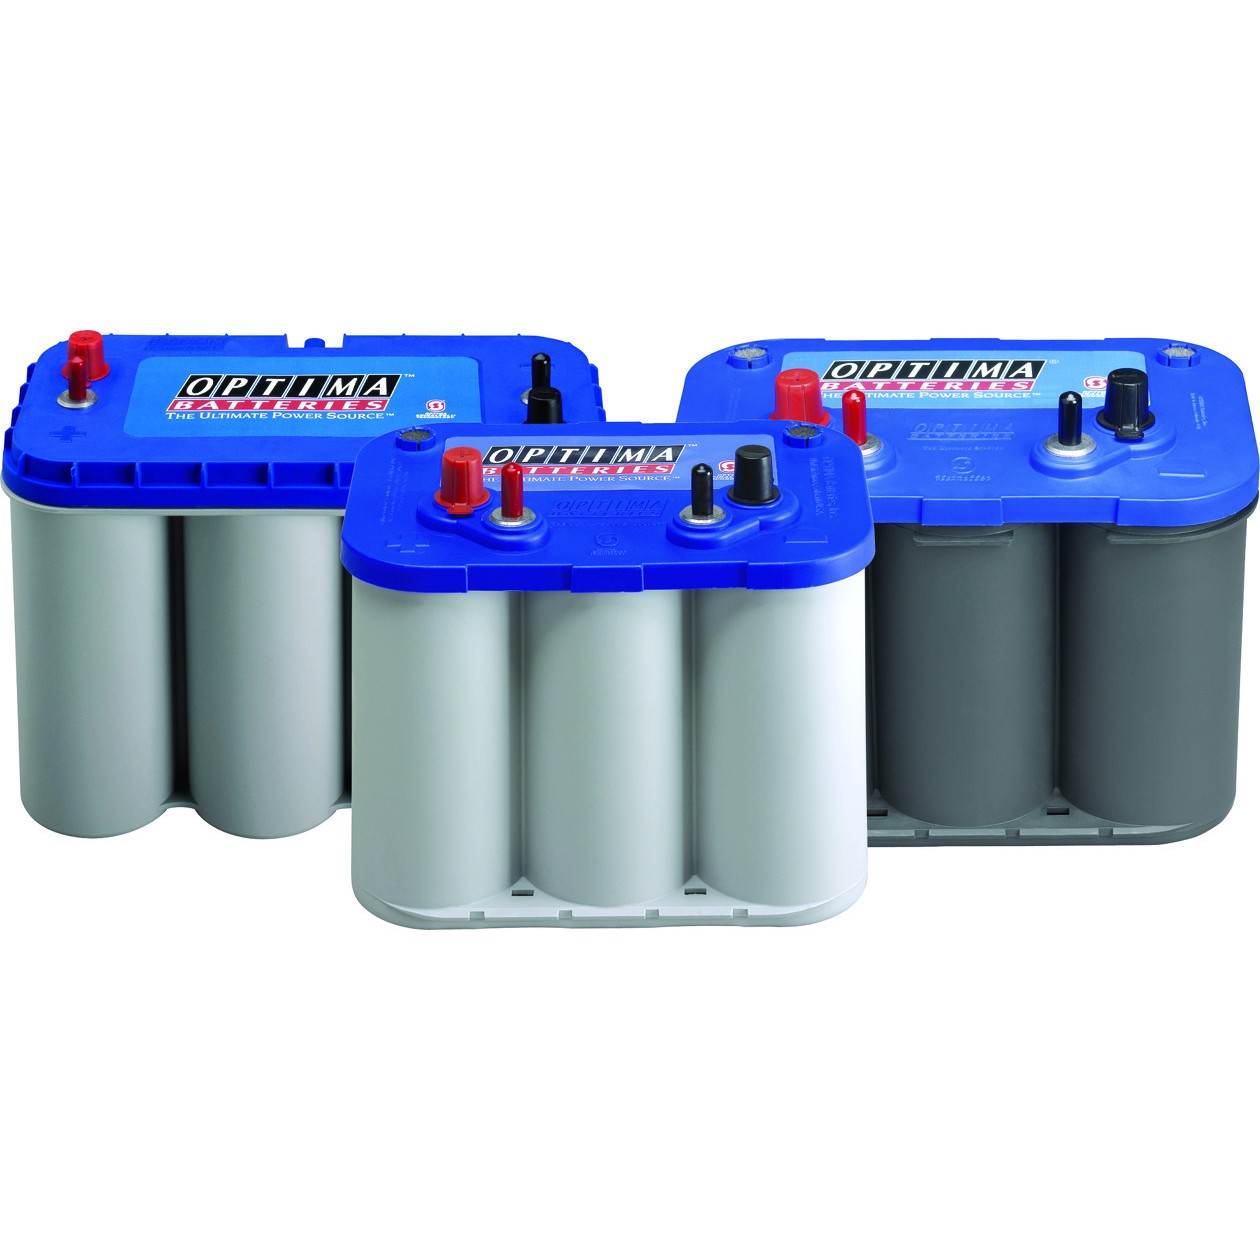 Click image for larger version  Name:optima-bluetop-starting-deep-cycle-batteries_2790341C_5.jpg Views:63 Size:144.9 KB ID:41541